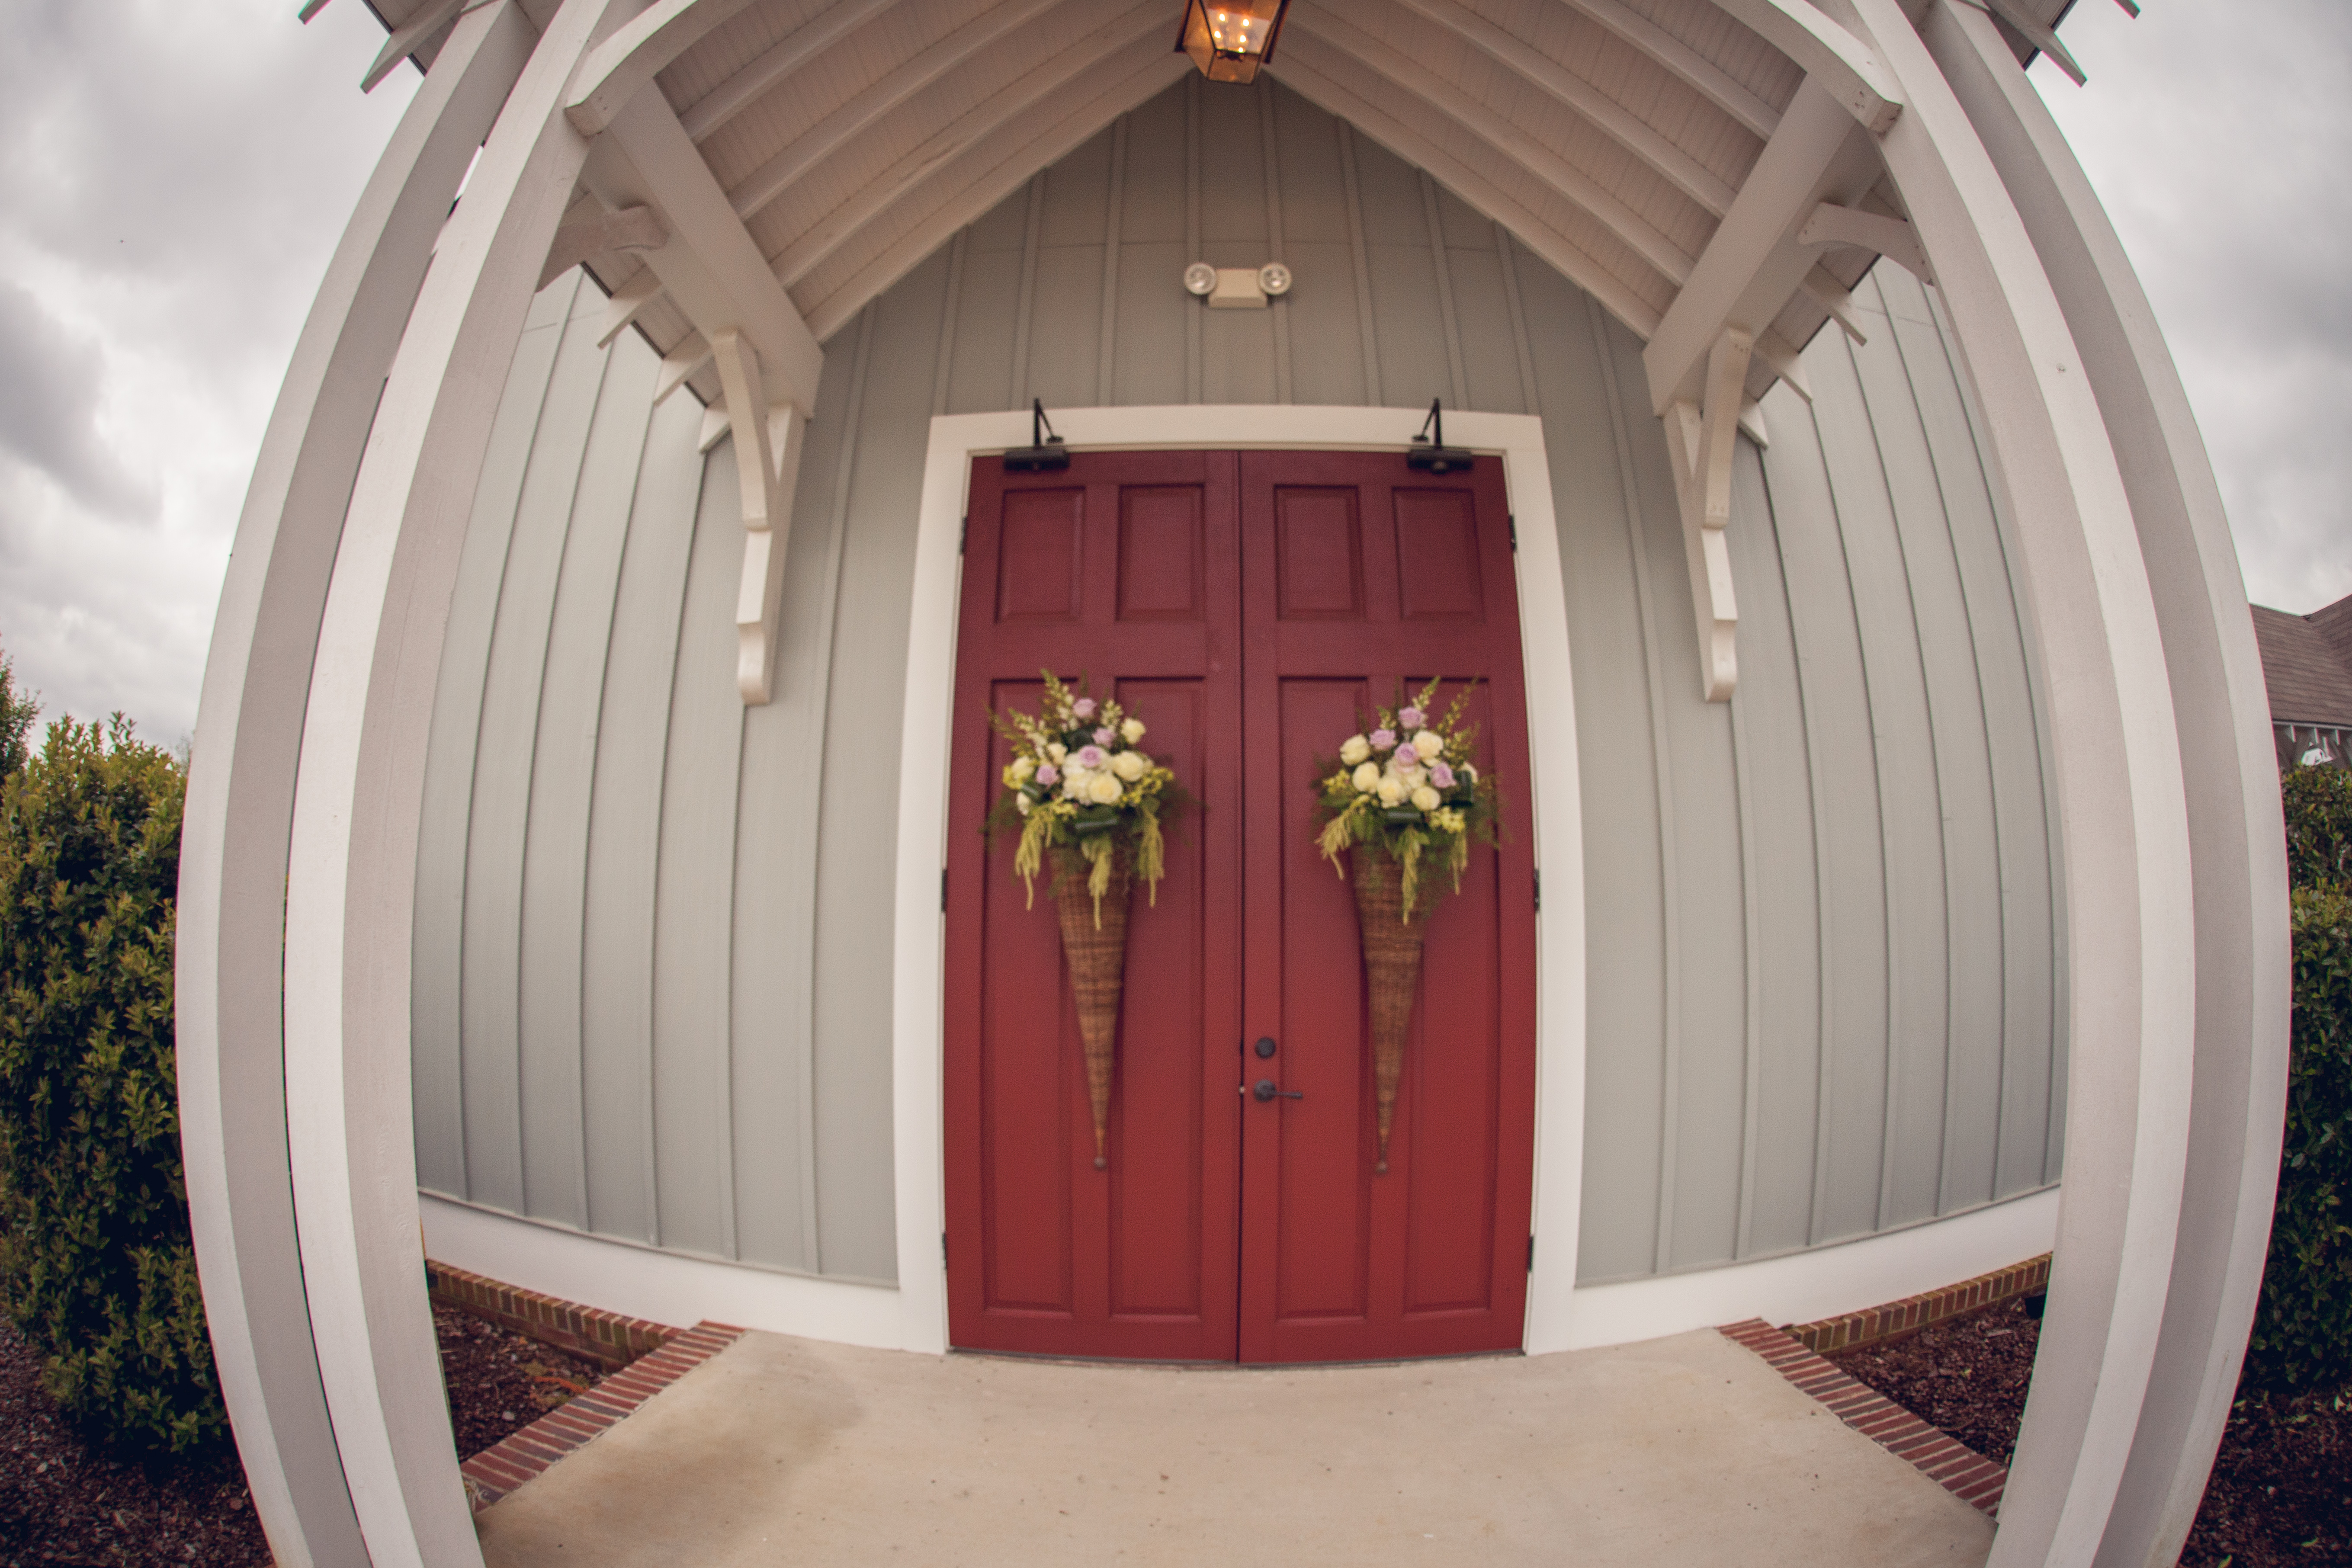 Fisheye View Of The Flowers On The Doors Christ Episcopal Church